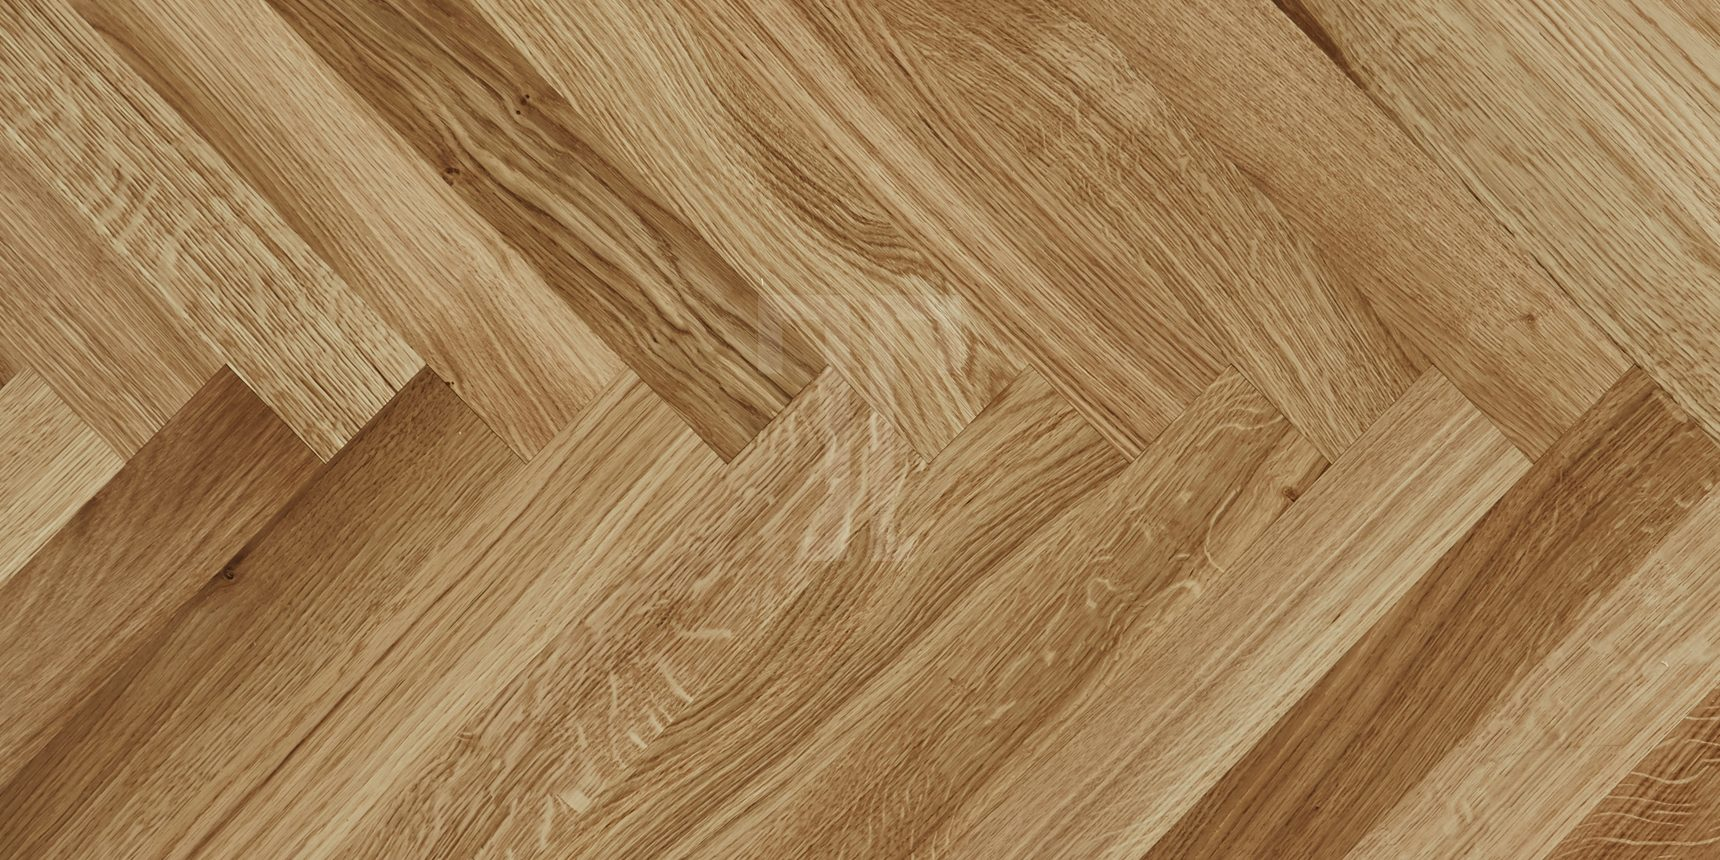 wood floor belvoir pale herringbone parquet wood flooring blocks, patterns and panels  collection UIYHWTS